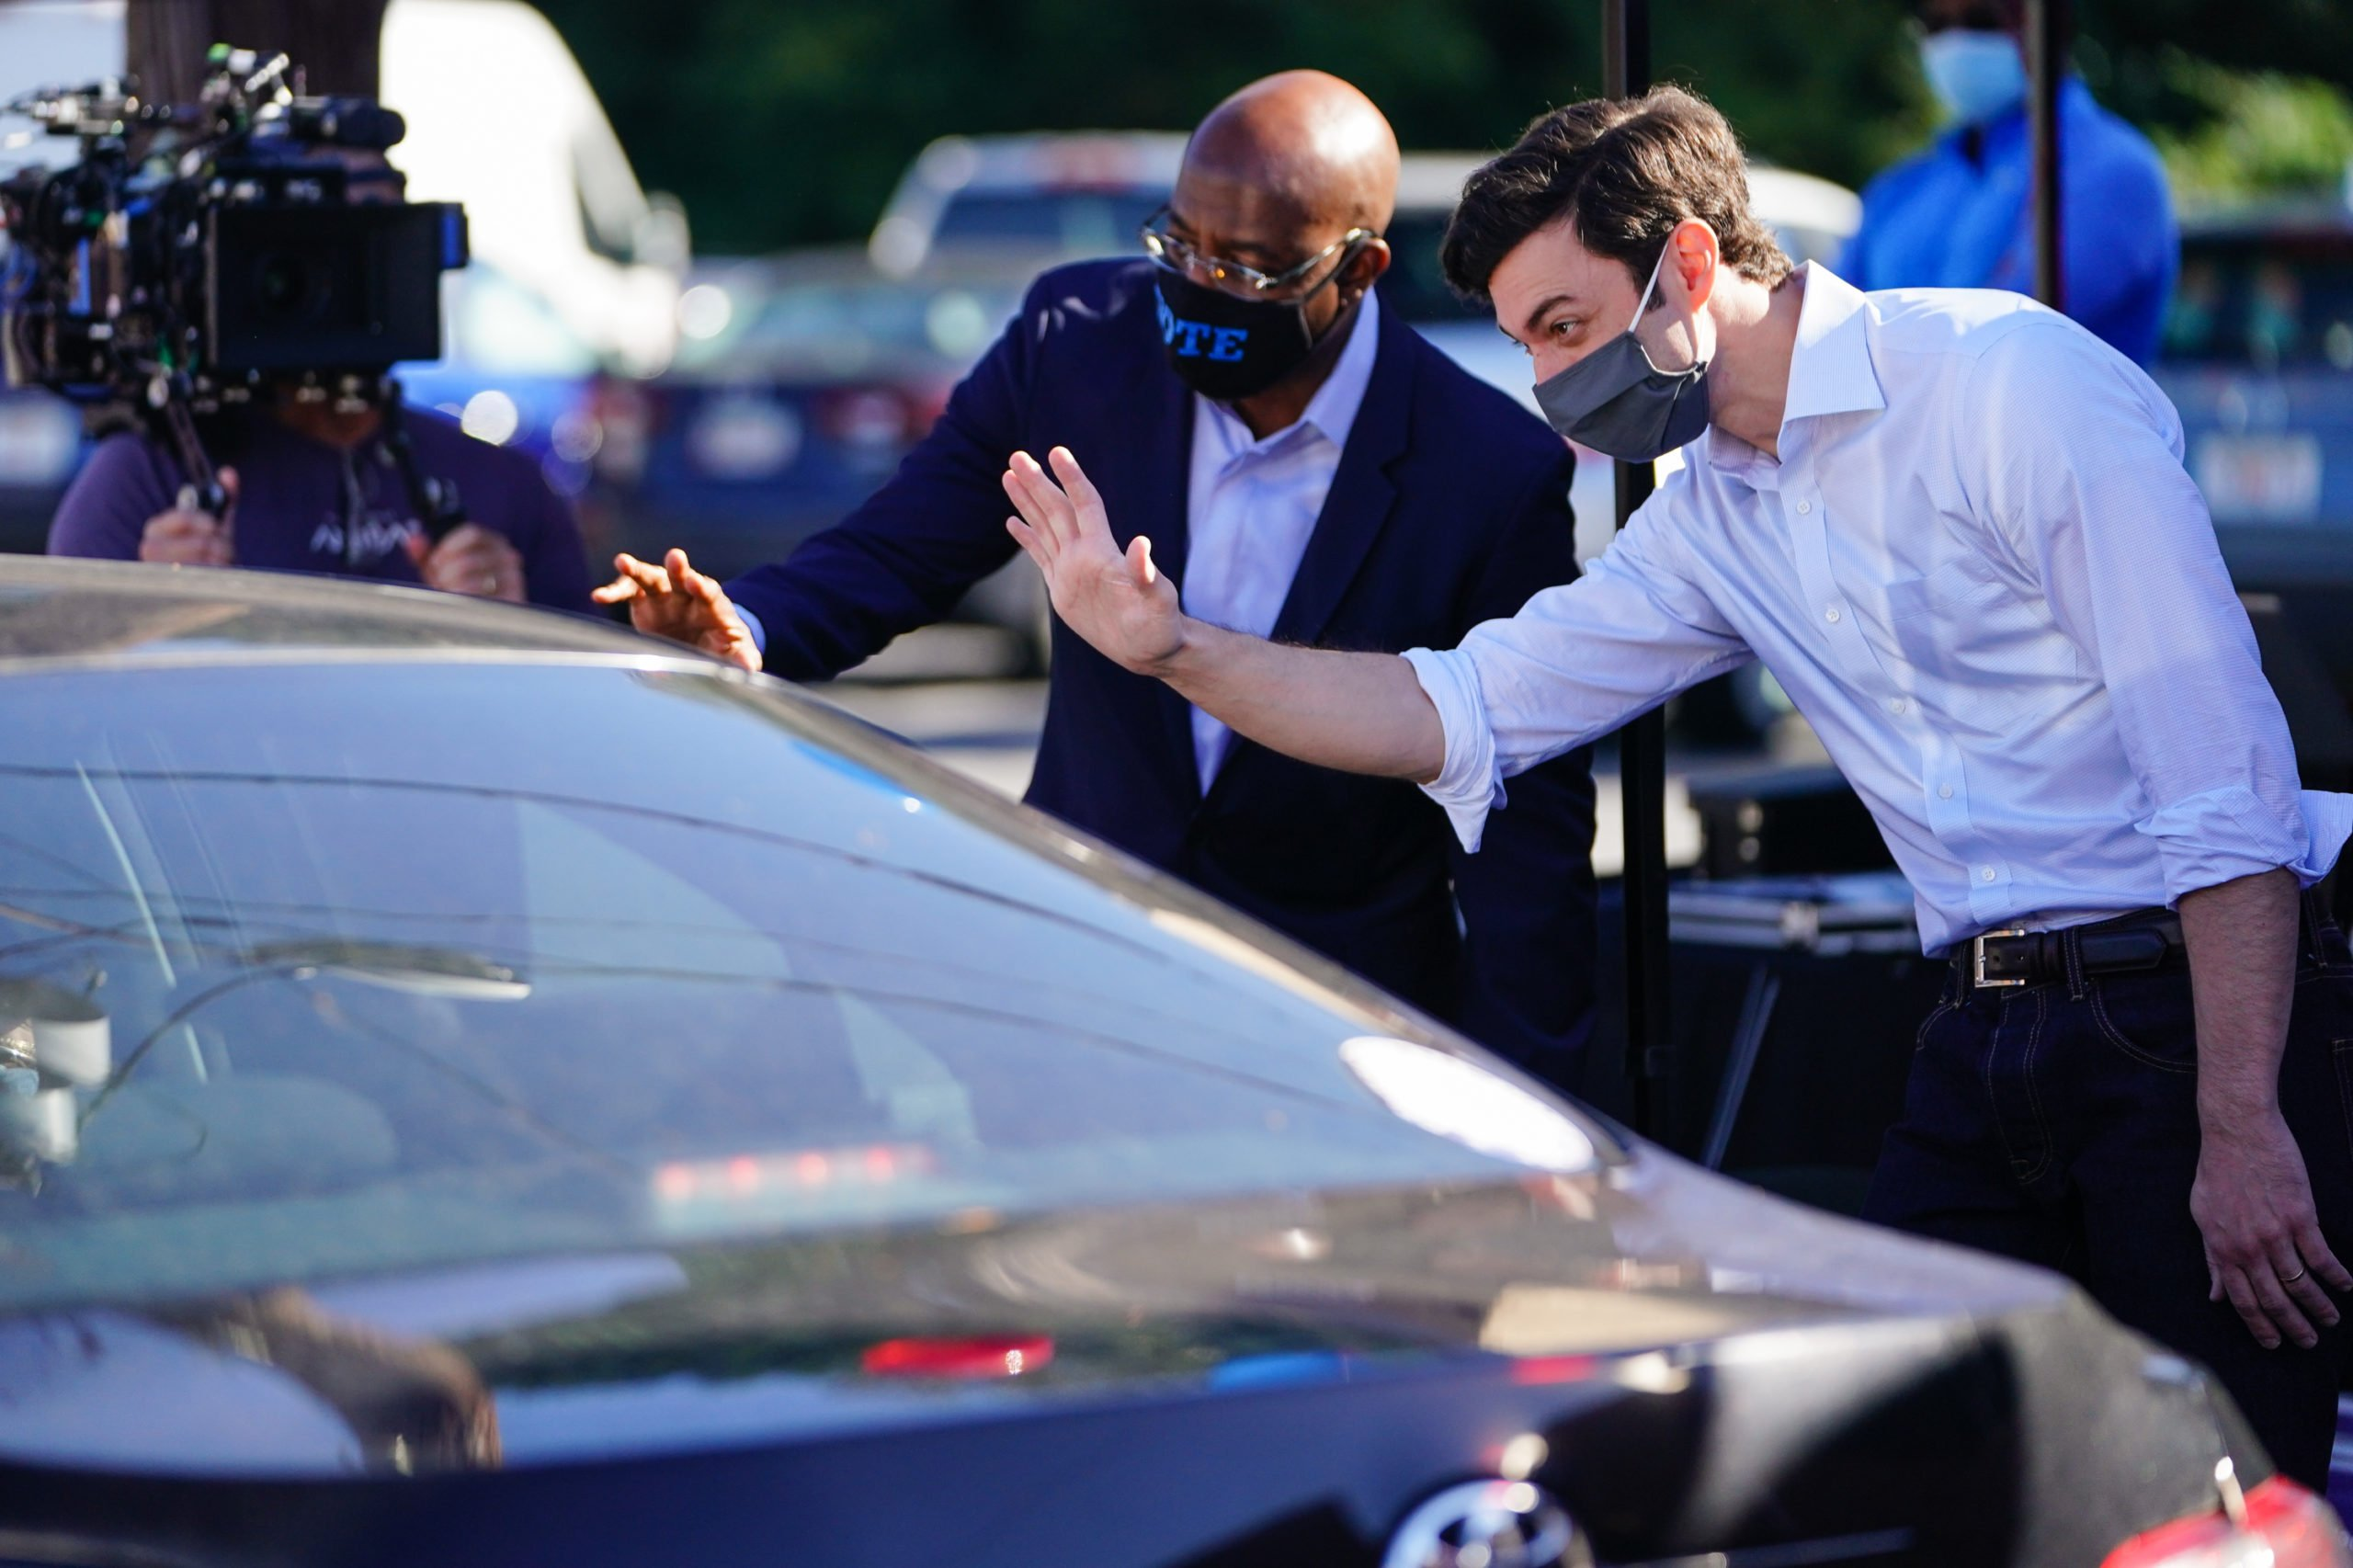 Democratic U.S. Senate candidates Jon Ossoff and Rev. Raphael Warnock hand out lawn signs at a campaign event on October 3, 2020 in Lithonia, Georgia. The two are hoping to unseat incumbent Senators David Perdue and Kelly Loeffler. (Elijah Nouvelage/Getty Images)